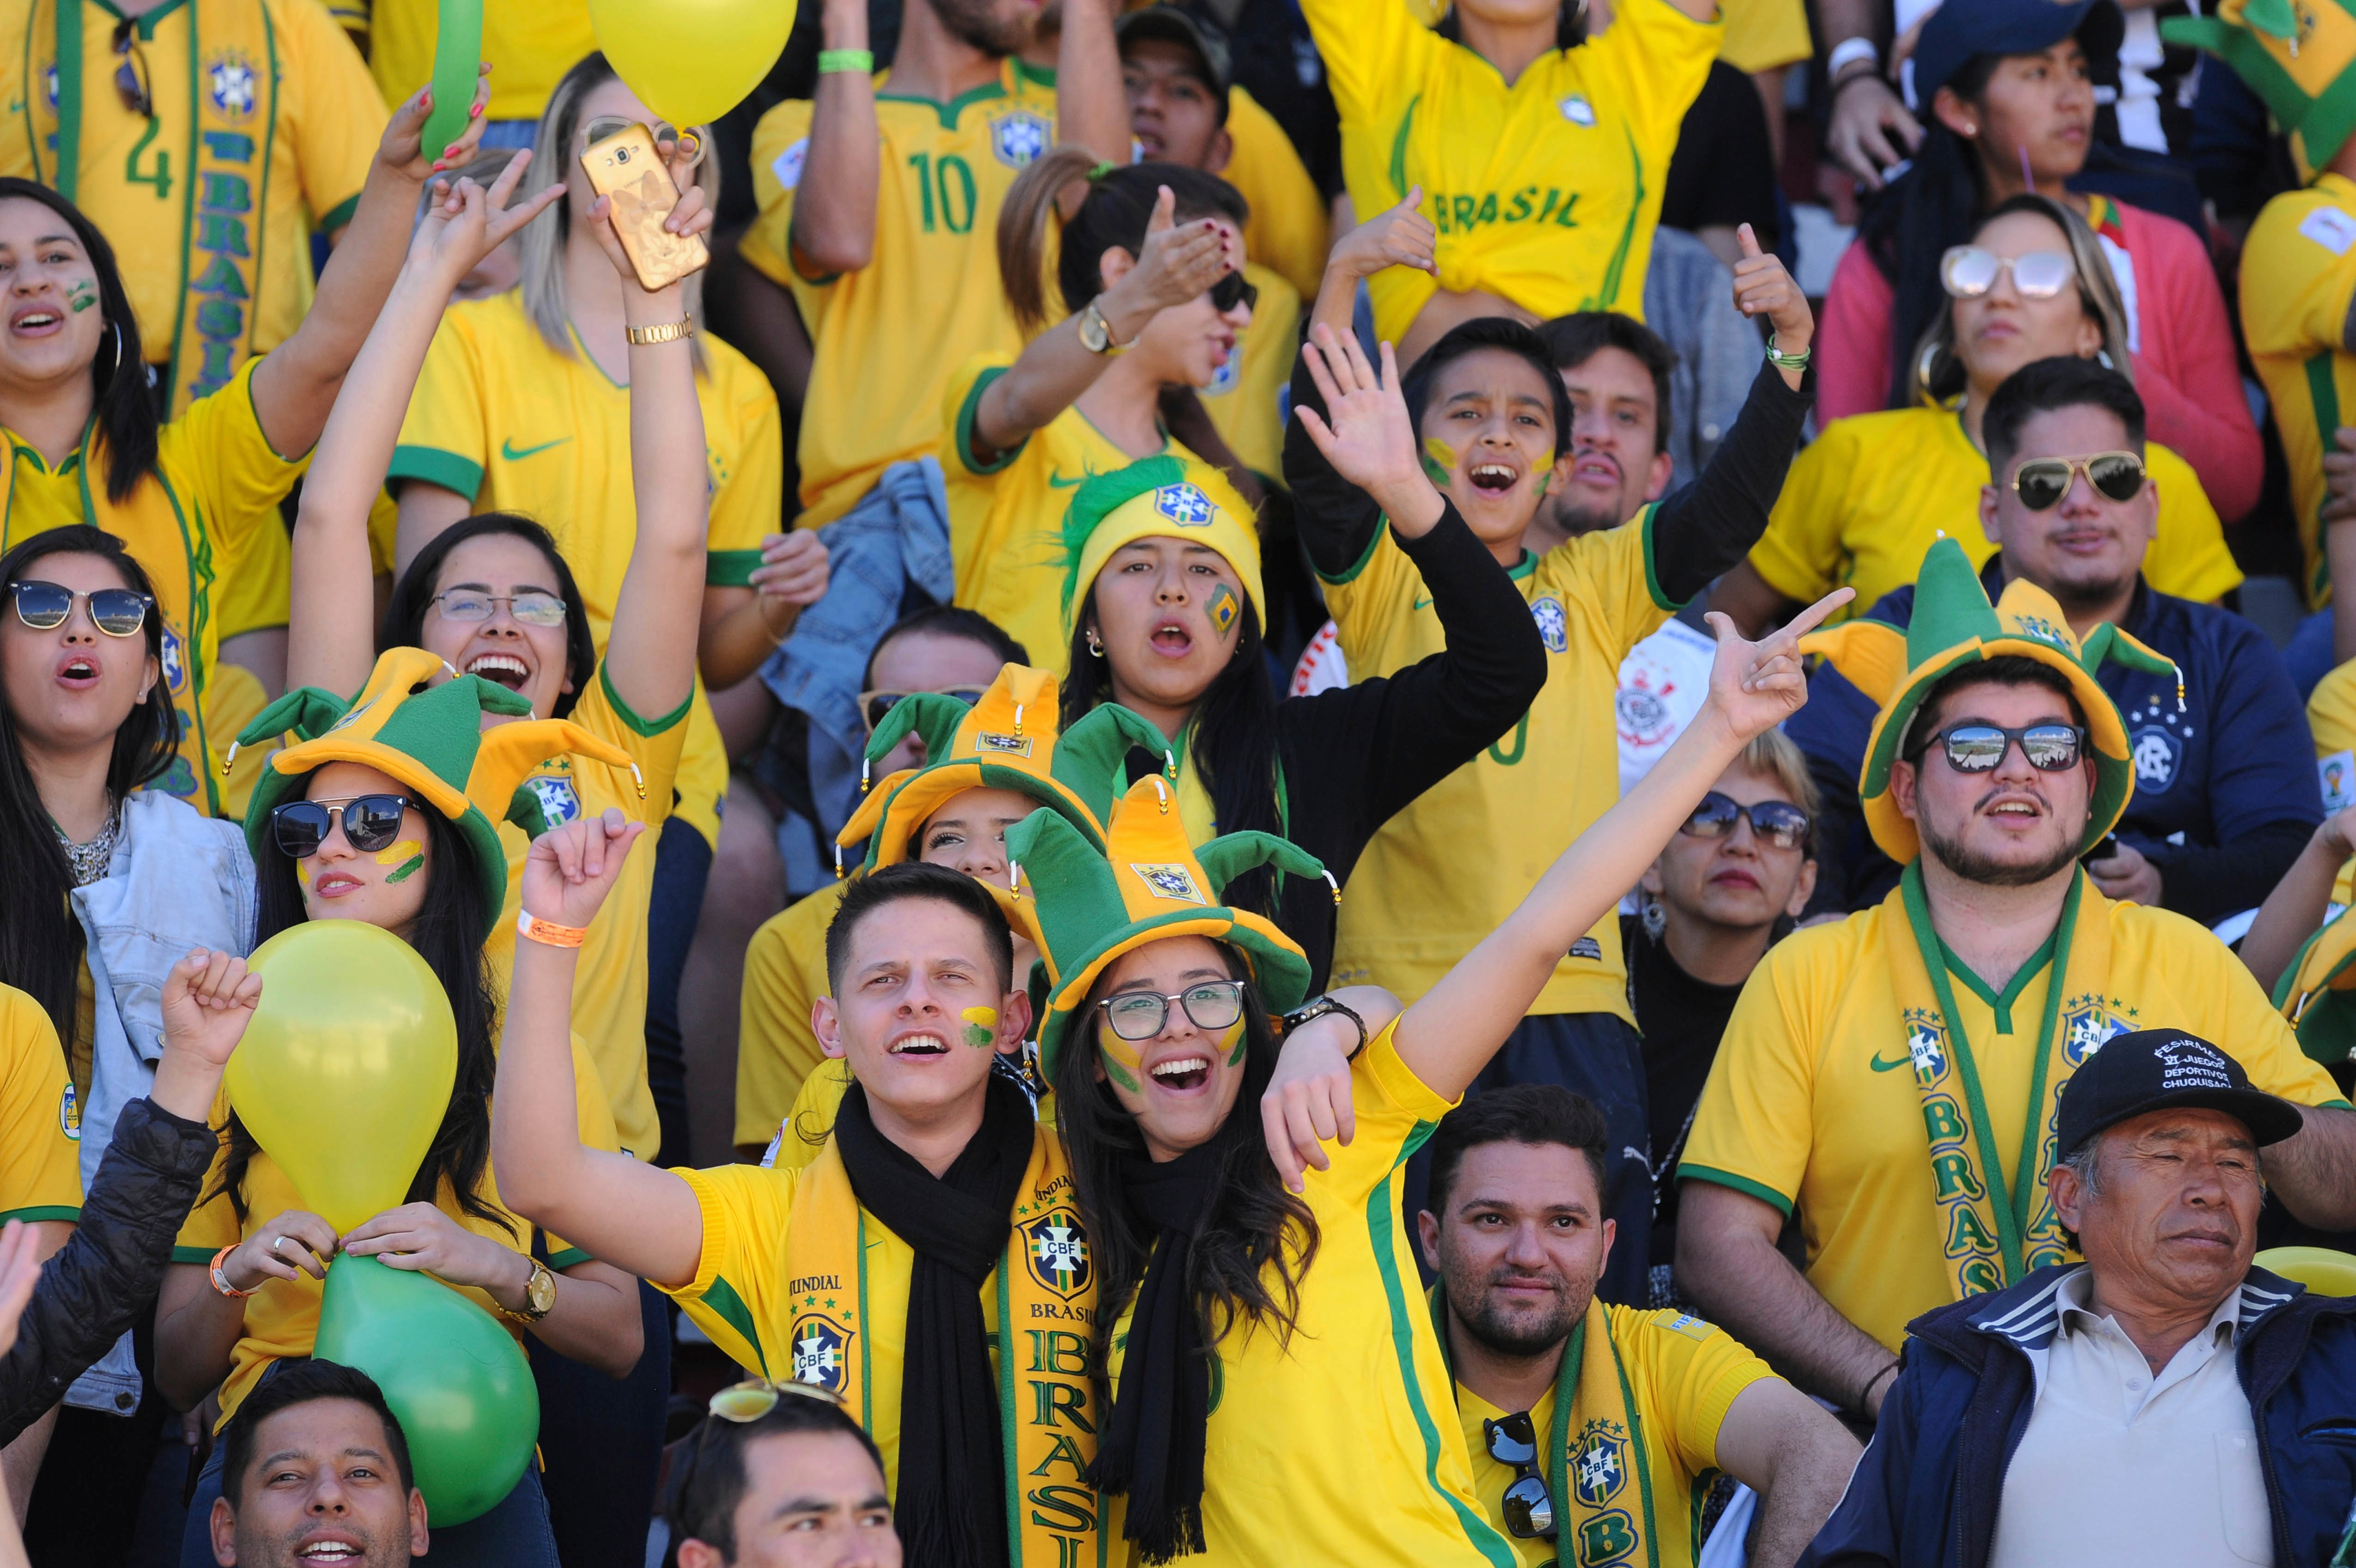 LA PAZ, BOLIVIA - OCTOBER 05: Fans of Brazil cheer for their team during a match between Bolivia and Brazil as part of FIFA 2018 World Cup Qualifiers at Hernando Siles Stadium on October 05, 2017 in La Paz, Bolivia. (Photo by Javier Mamani/Getty Images)